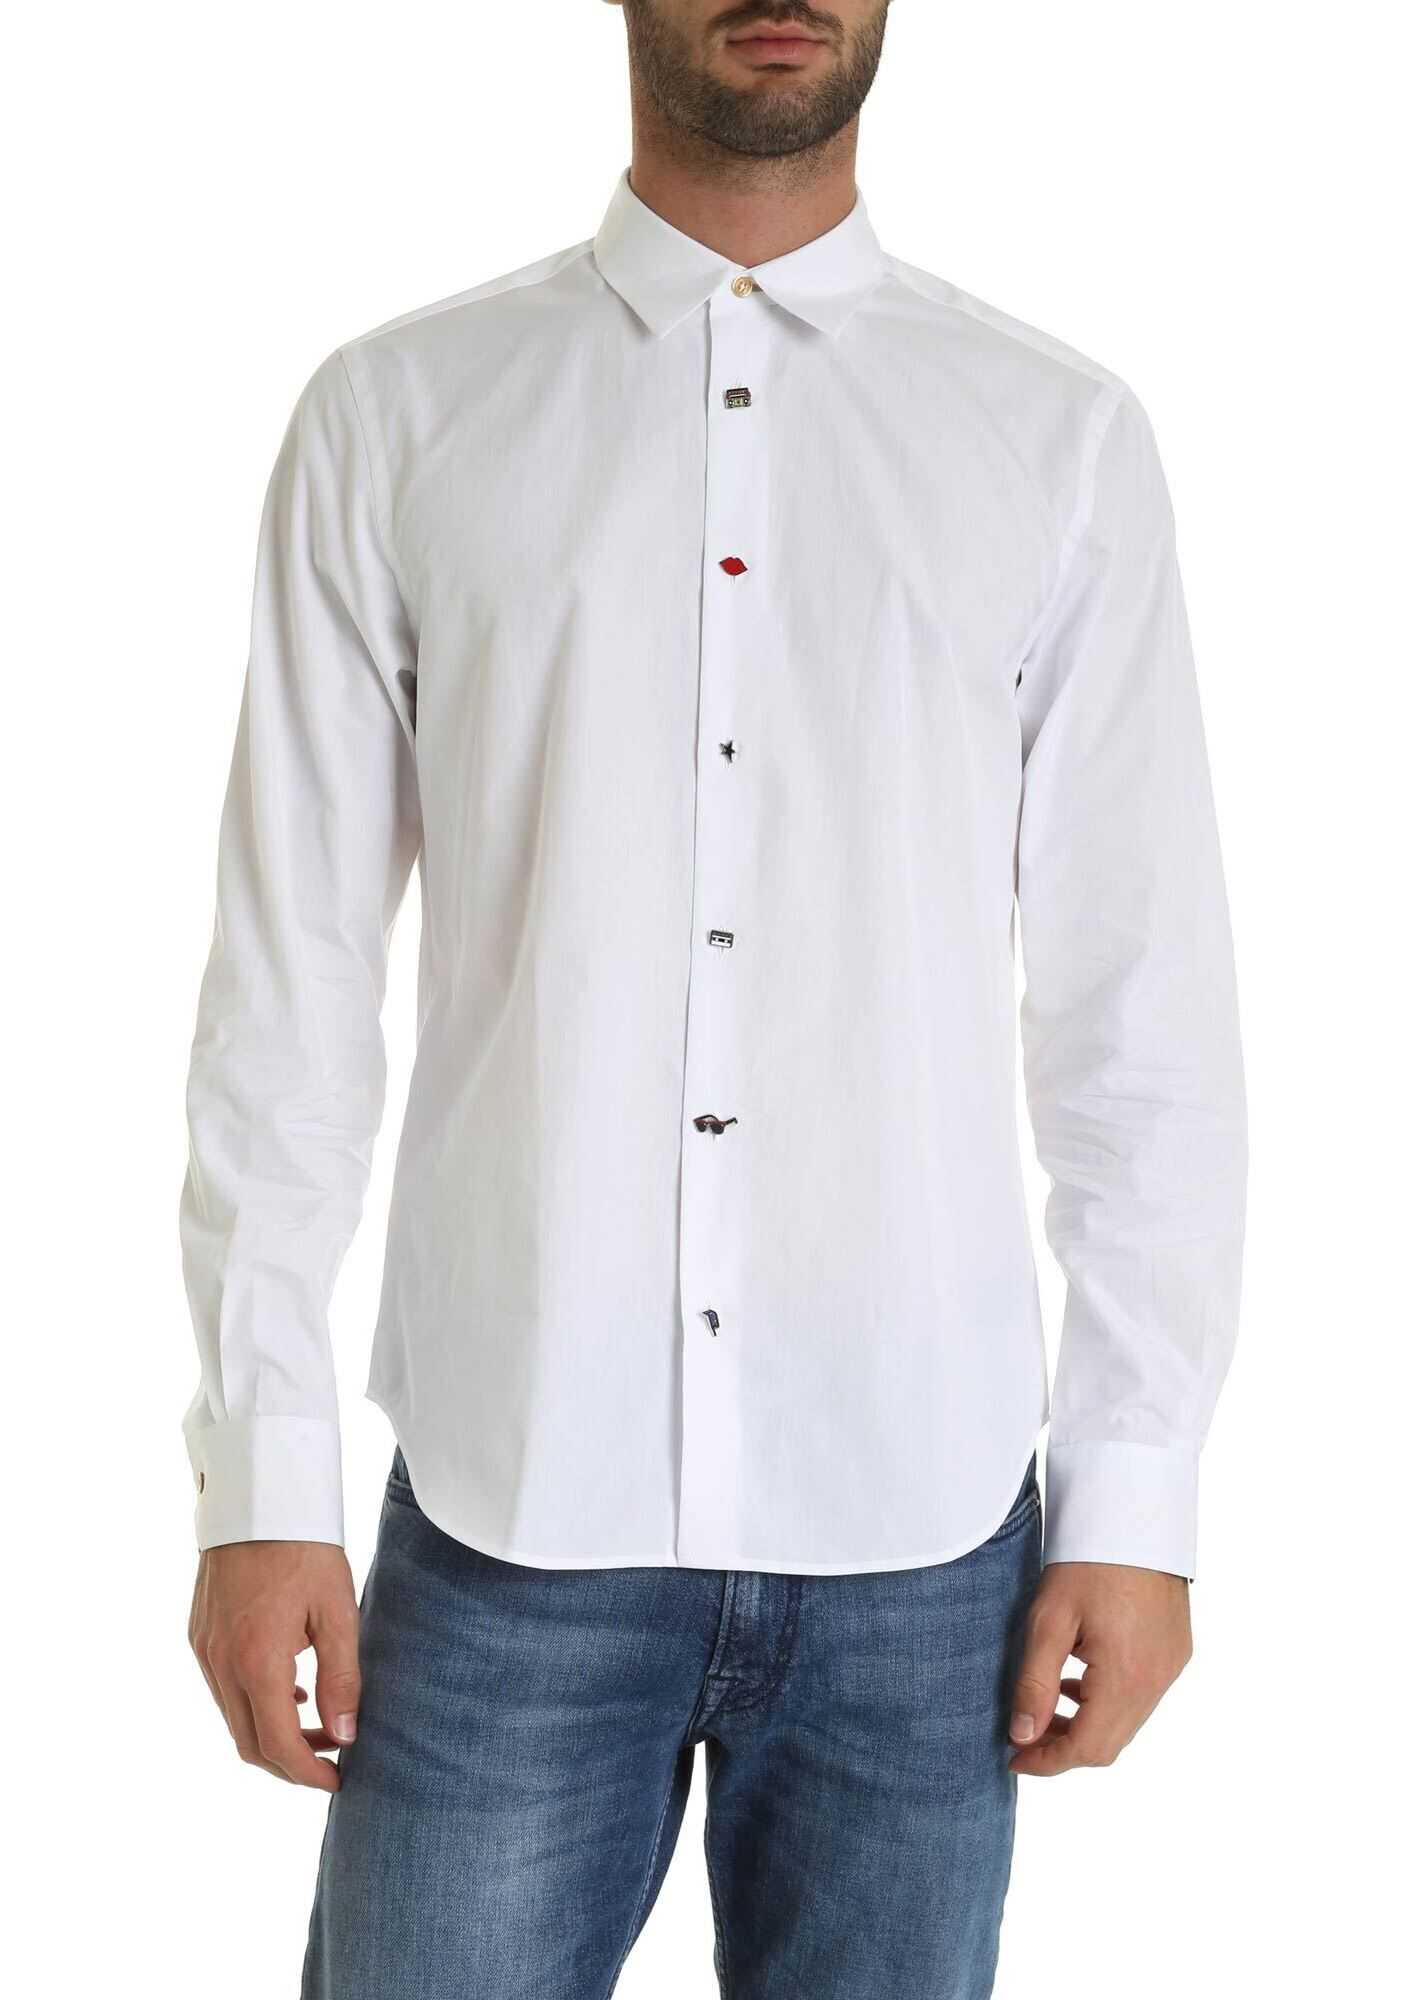 Decorated Buttons Shirt In White thumbnail